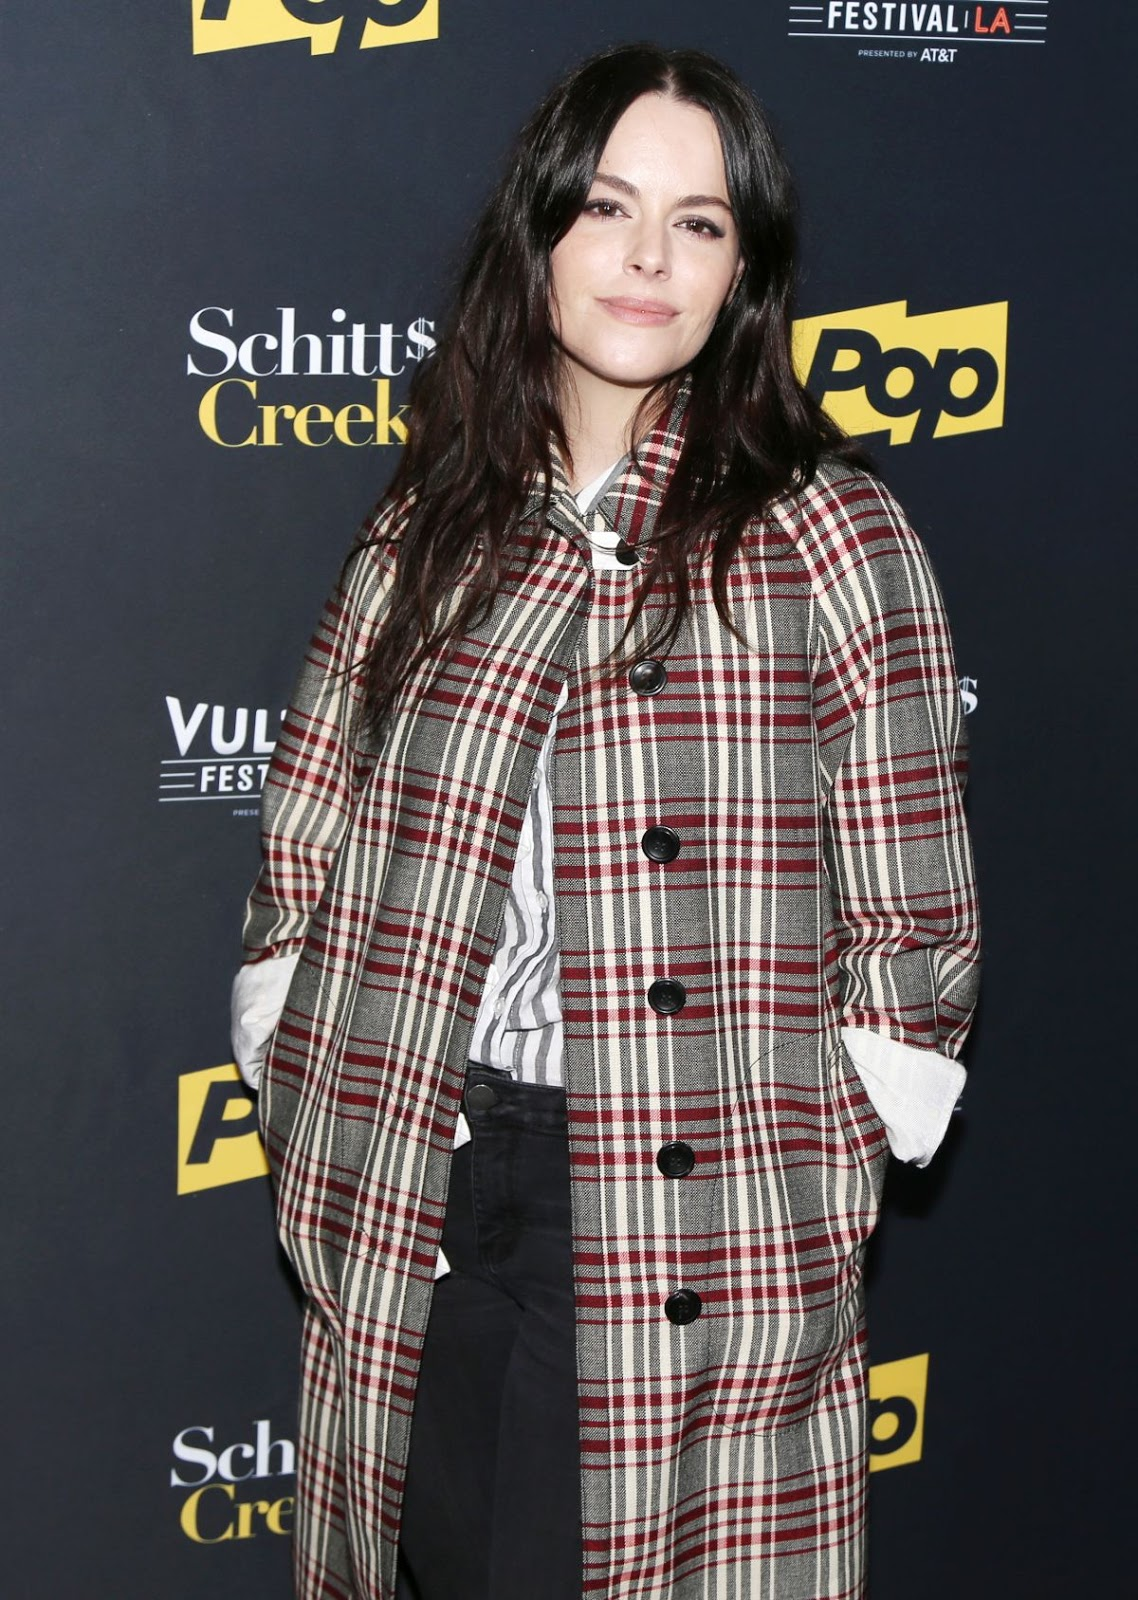 Photos of Emily Hampshire at Schitt's Creek Panel at Vulture Festival in Los Angeles